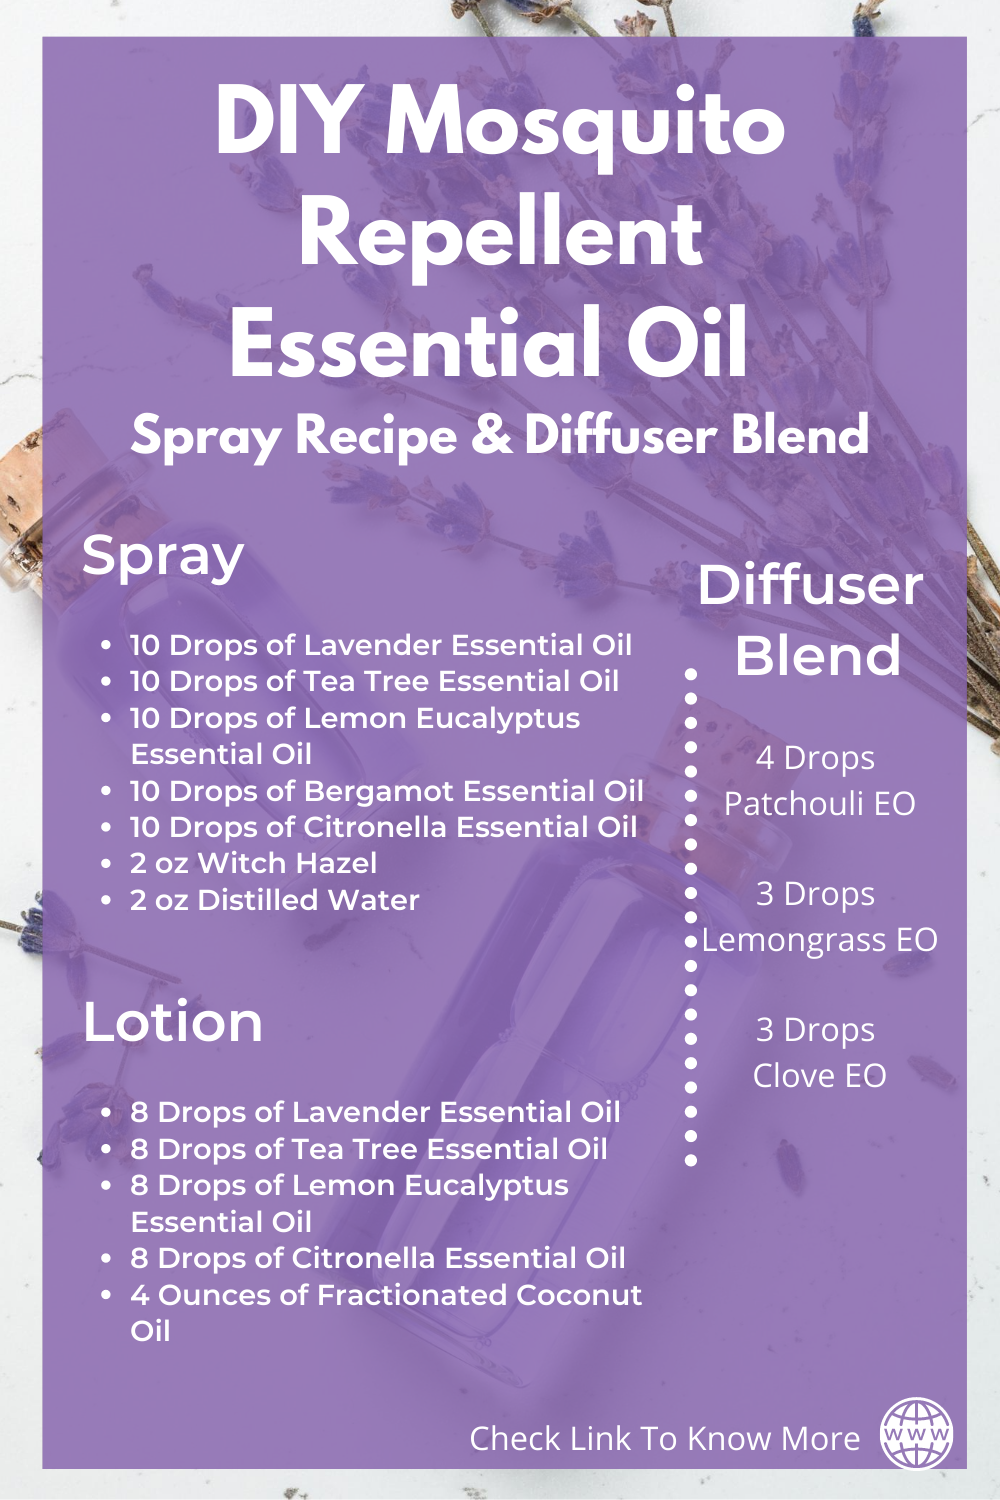 DIY Essential Oil Sprays & Diffuser Blends To Repel Bugs